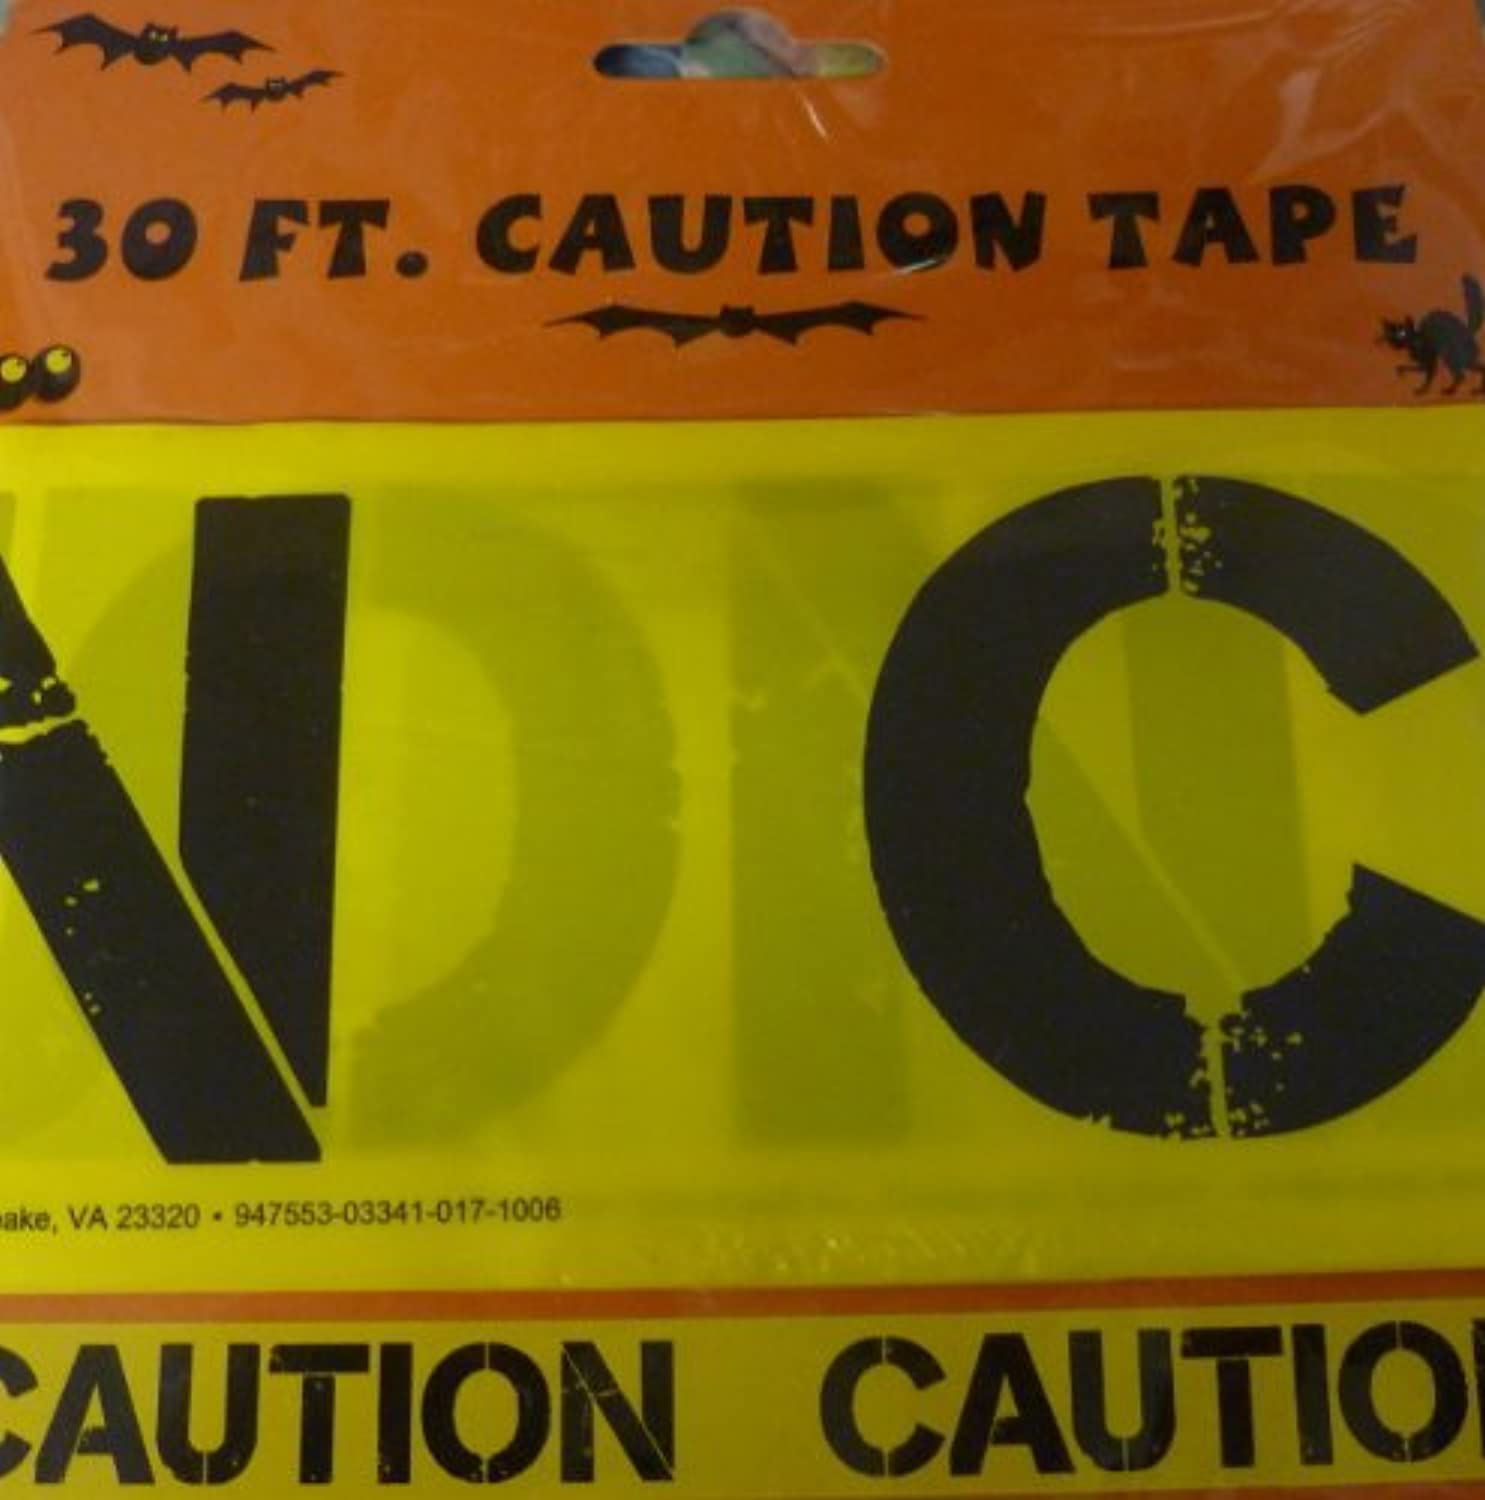 Halloween Caution Tape  CAUTION (30 Feet) by Halloween Caution Tape